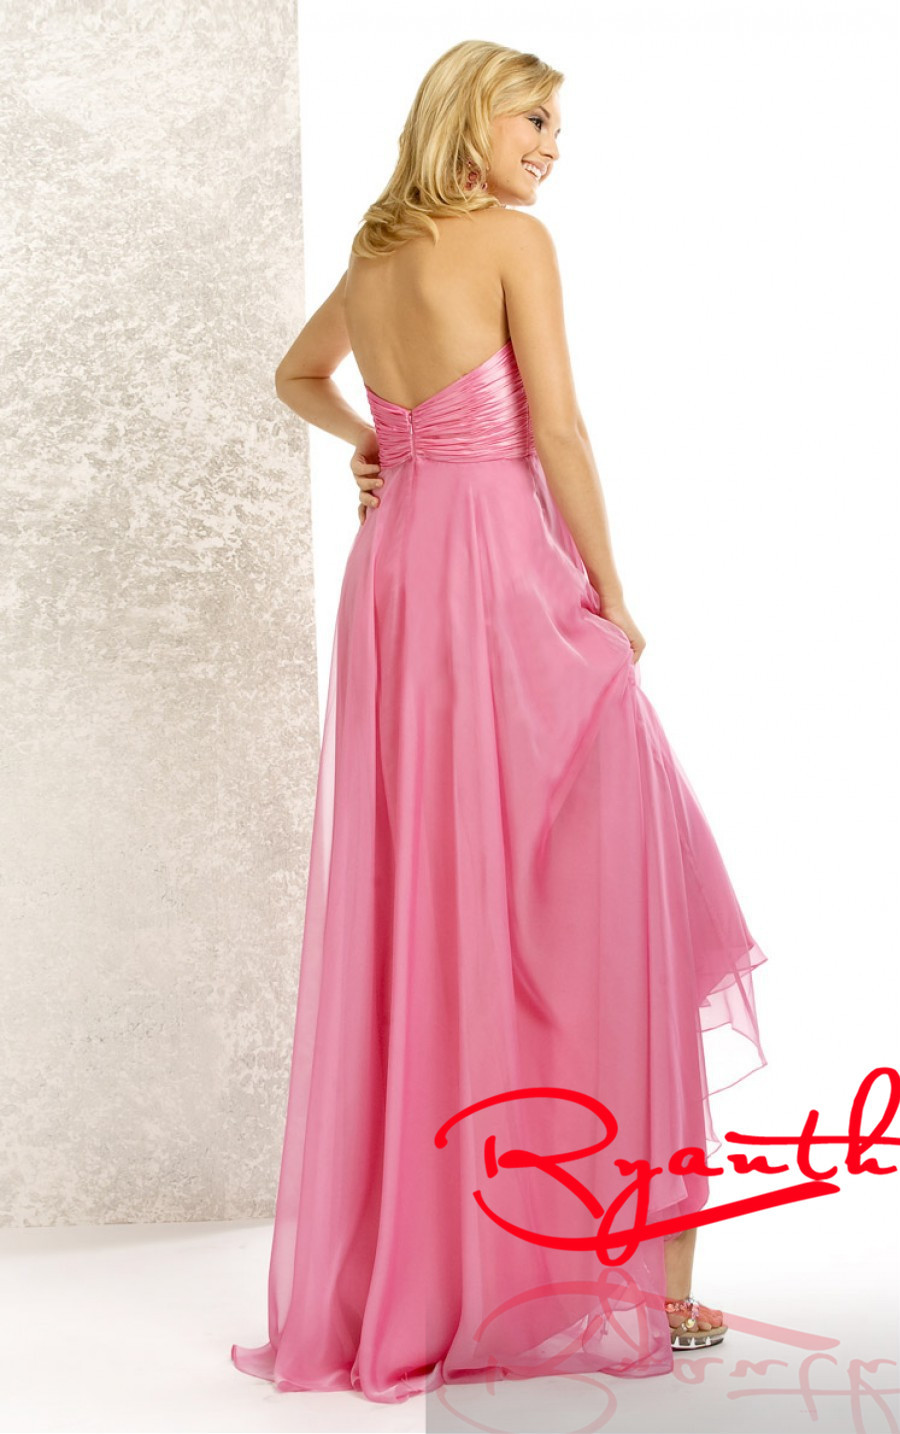 Prom Dress Stores In Utah - Cocktail Dresses 2016